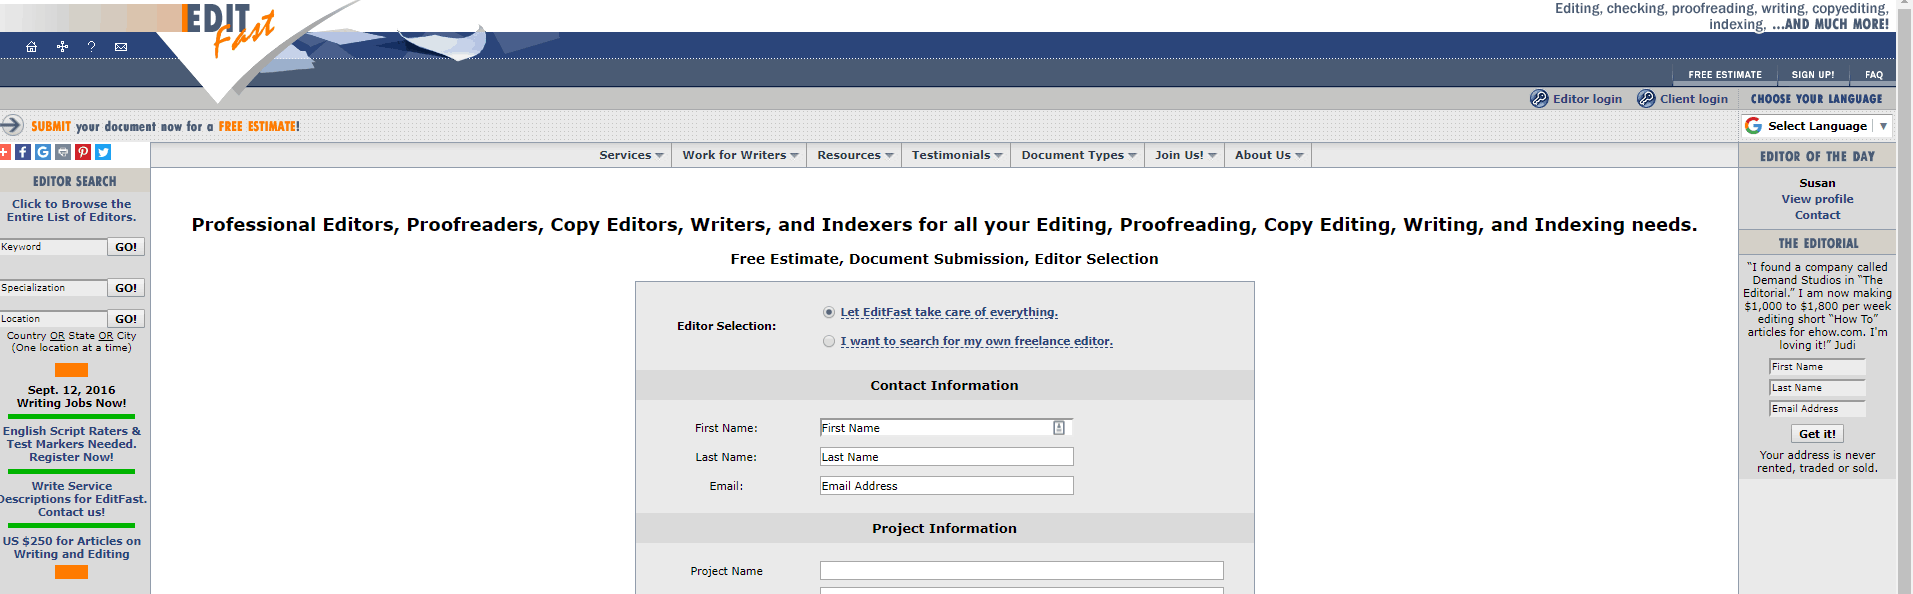 Edit Fast Screenshot for Online Proofreading Jobs